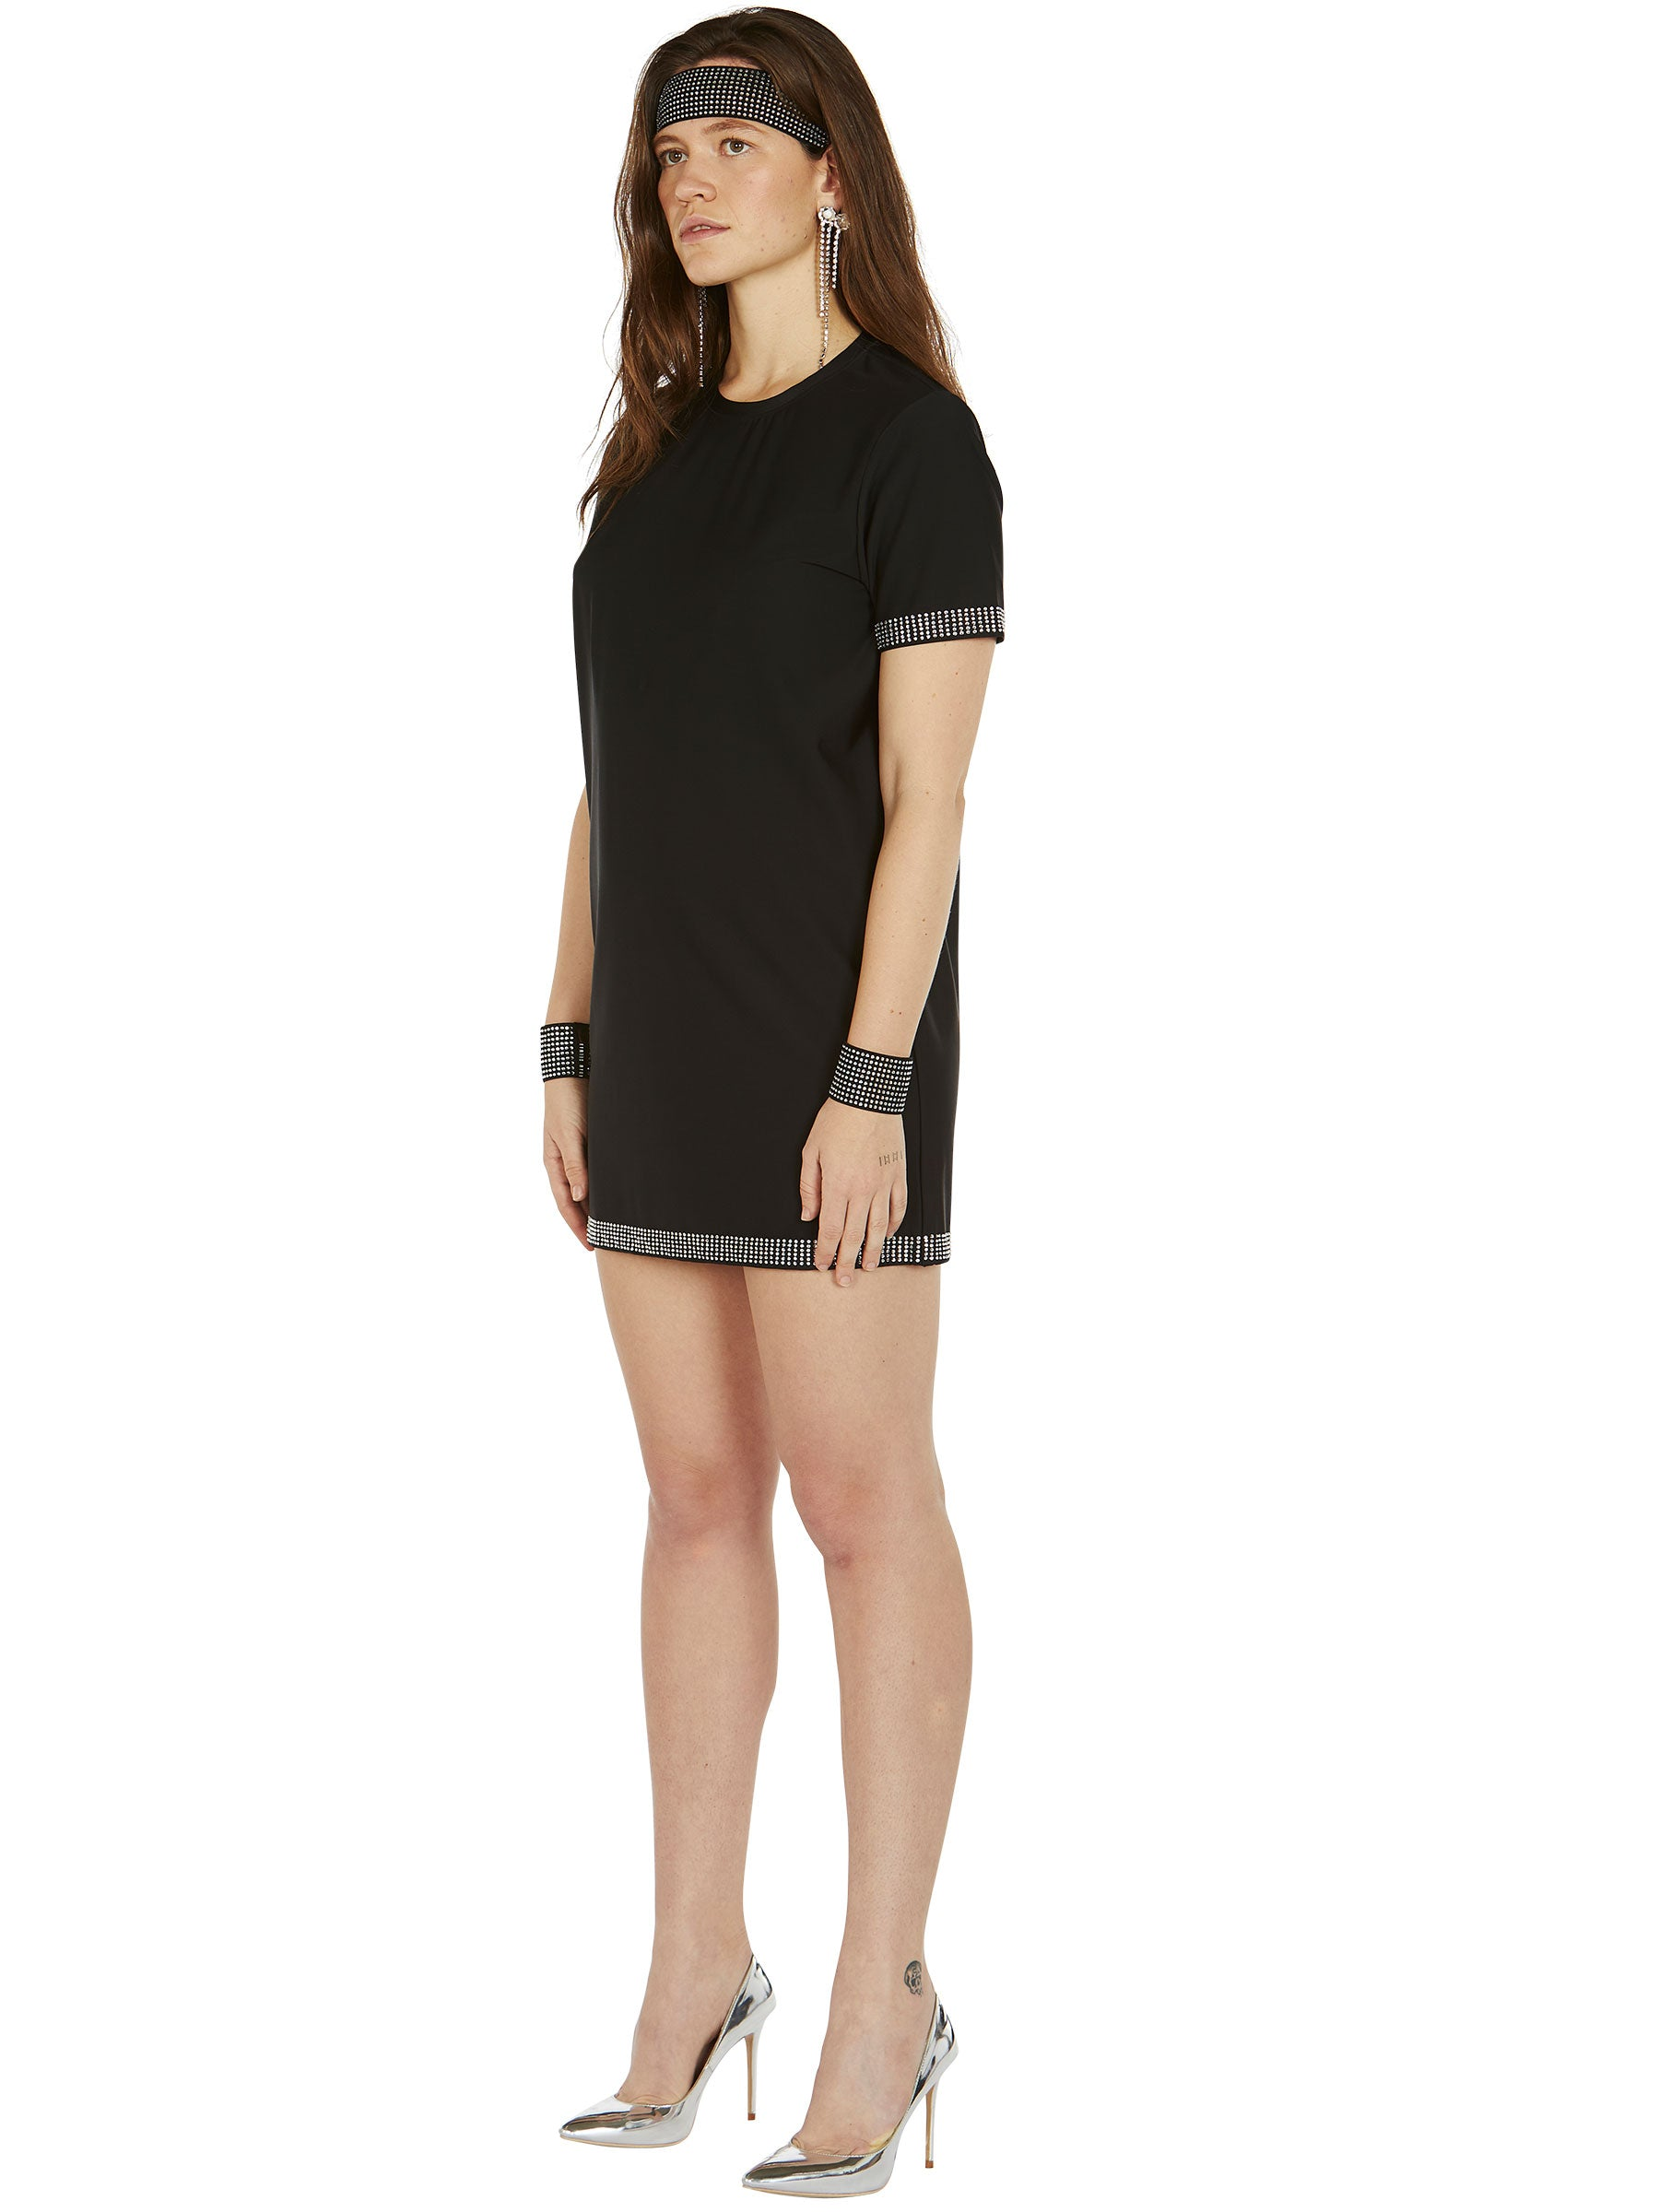 odd92 Adam Selman Sport Crystal T Mini Dress Spring/Summer 2019 Womenswear - 4